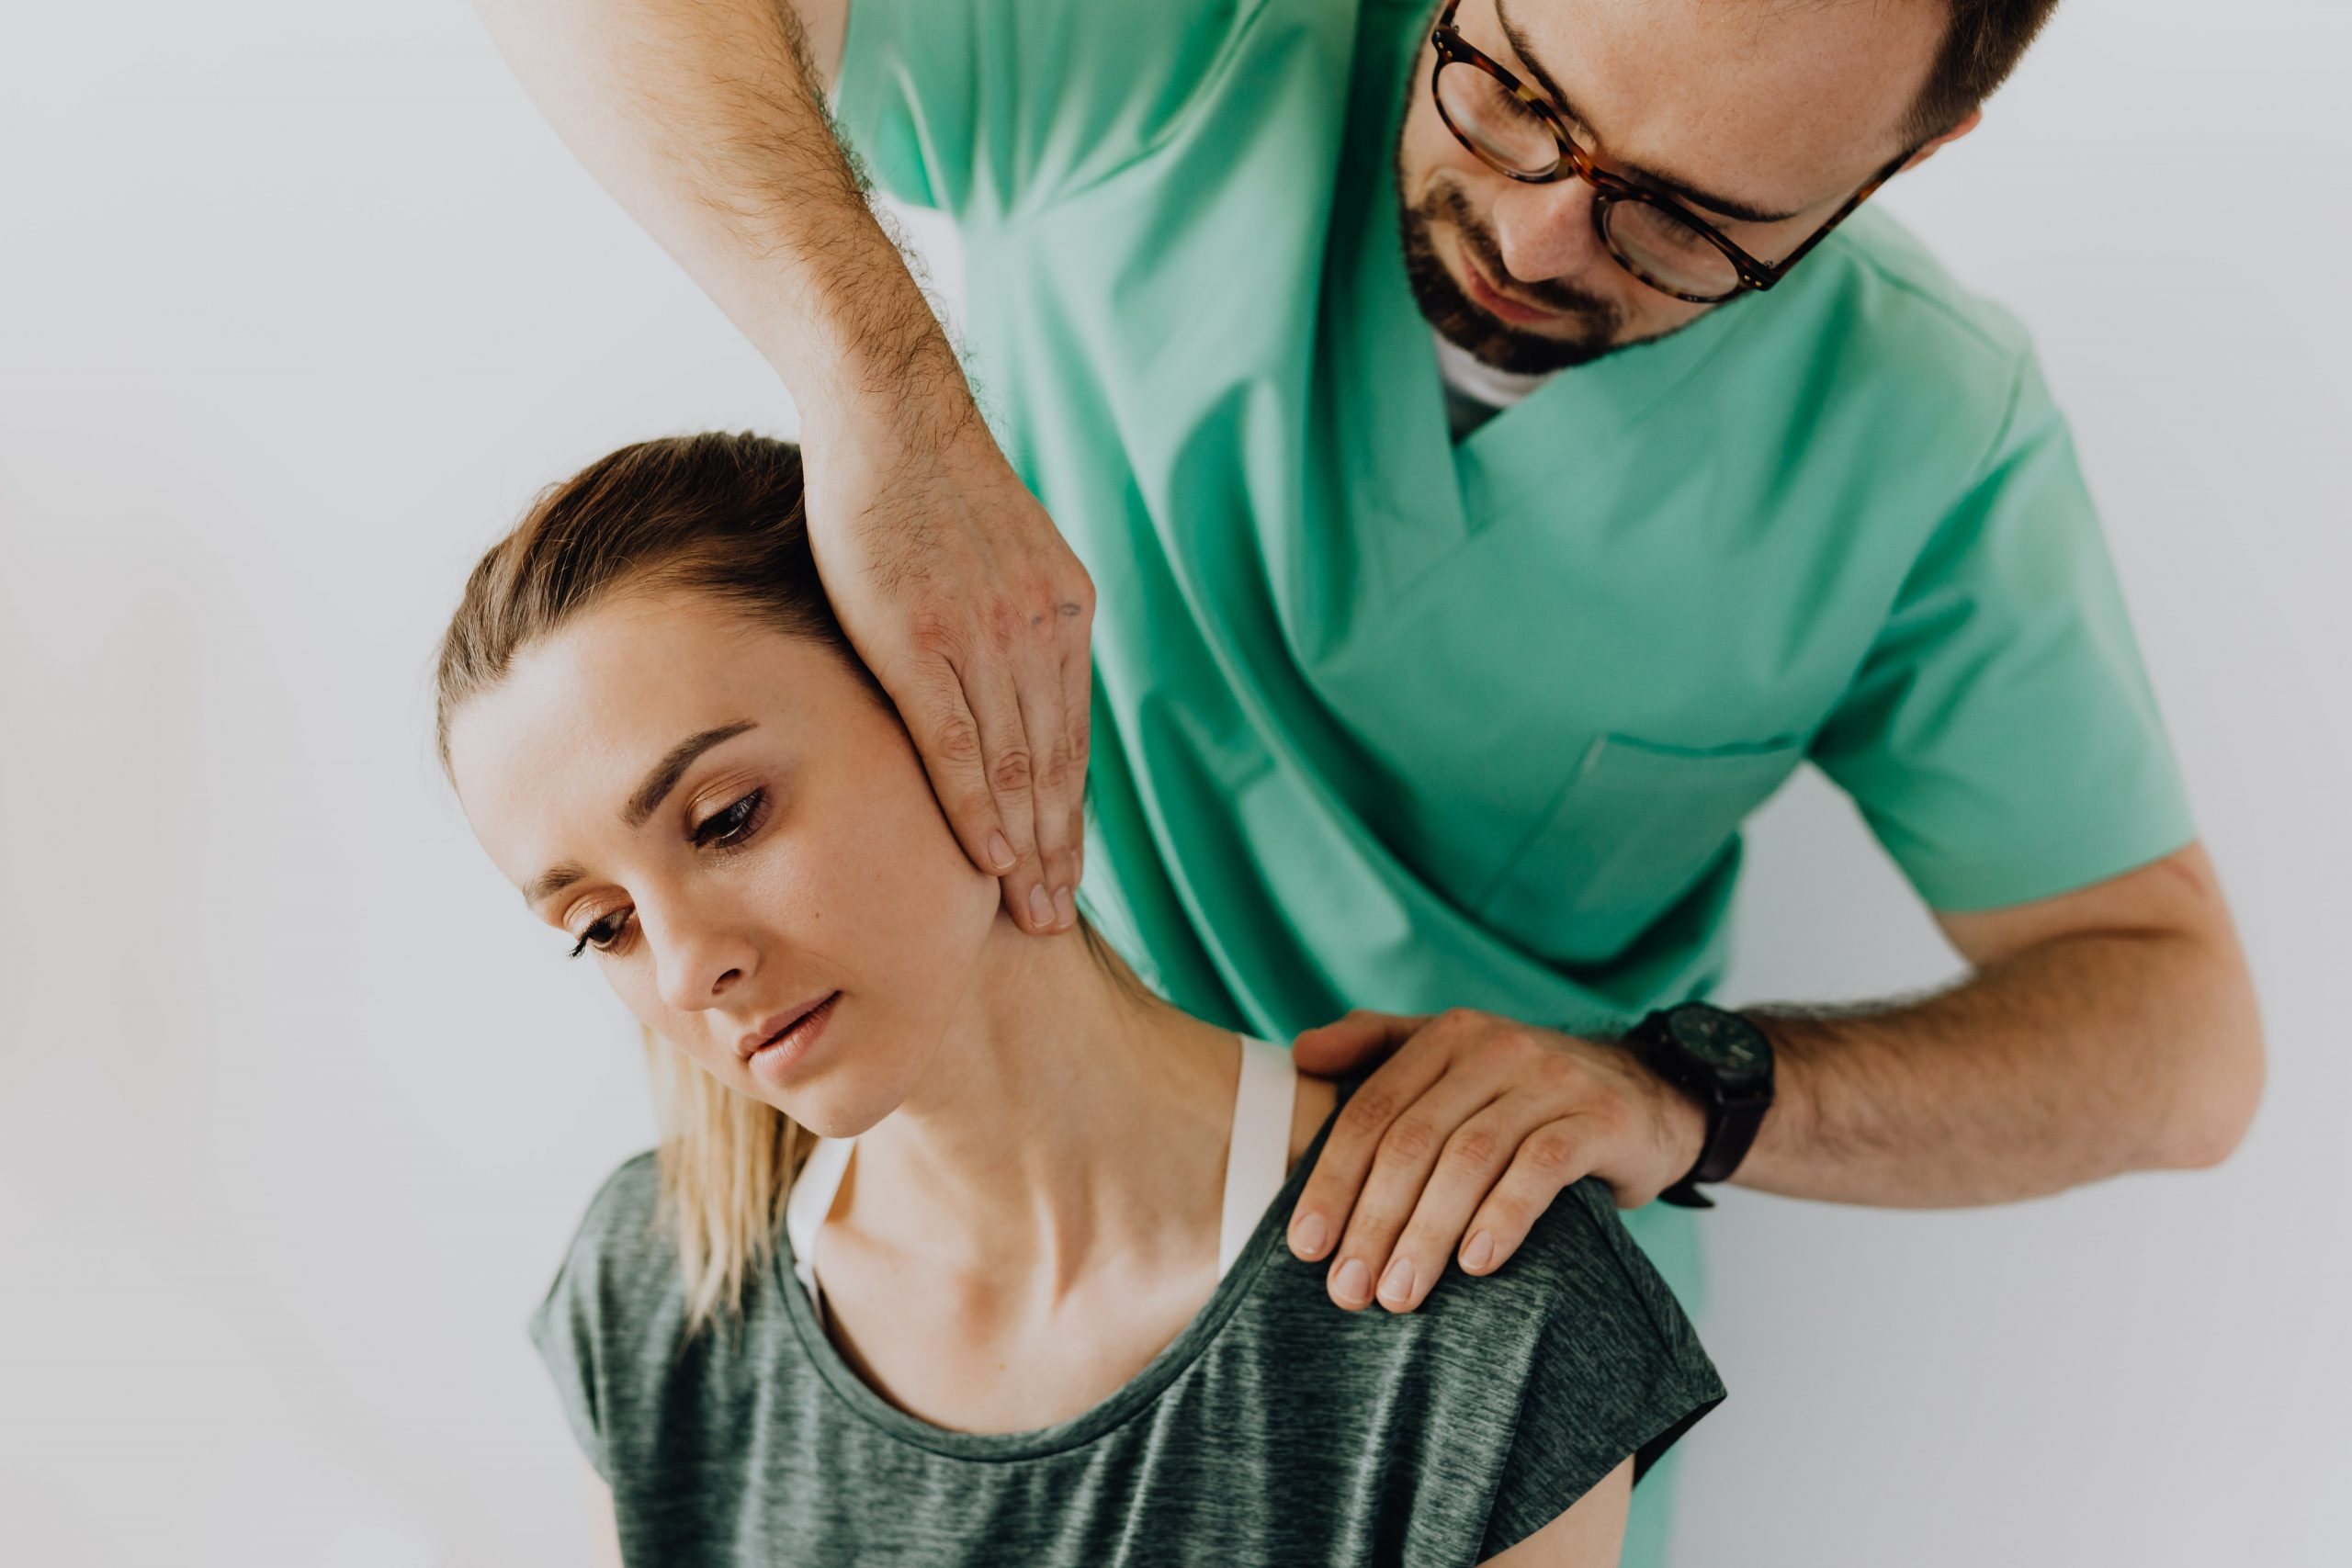 8 Things Chiropractors Must Assess For Practice Growth